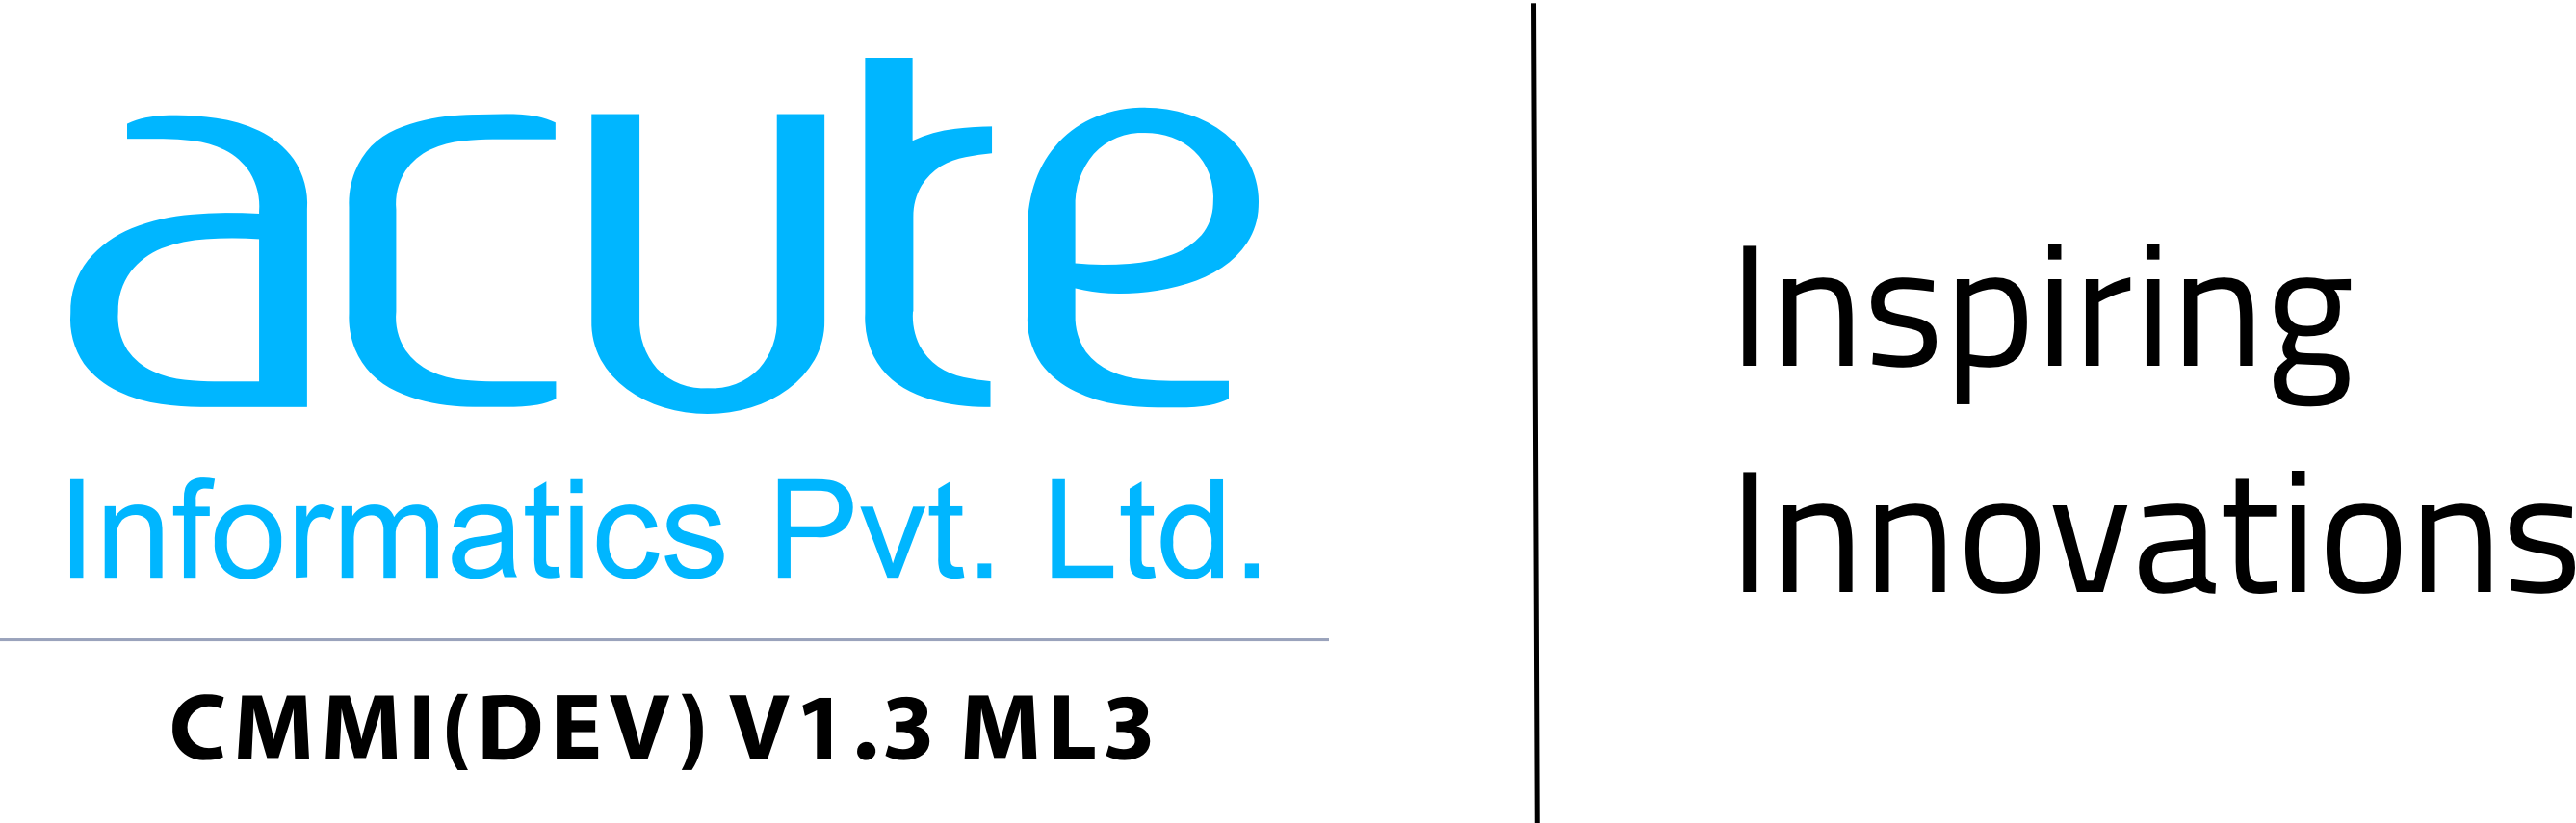 Acute Informatics Pvt. Ltd.